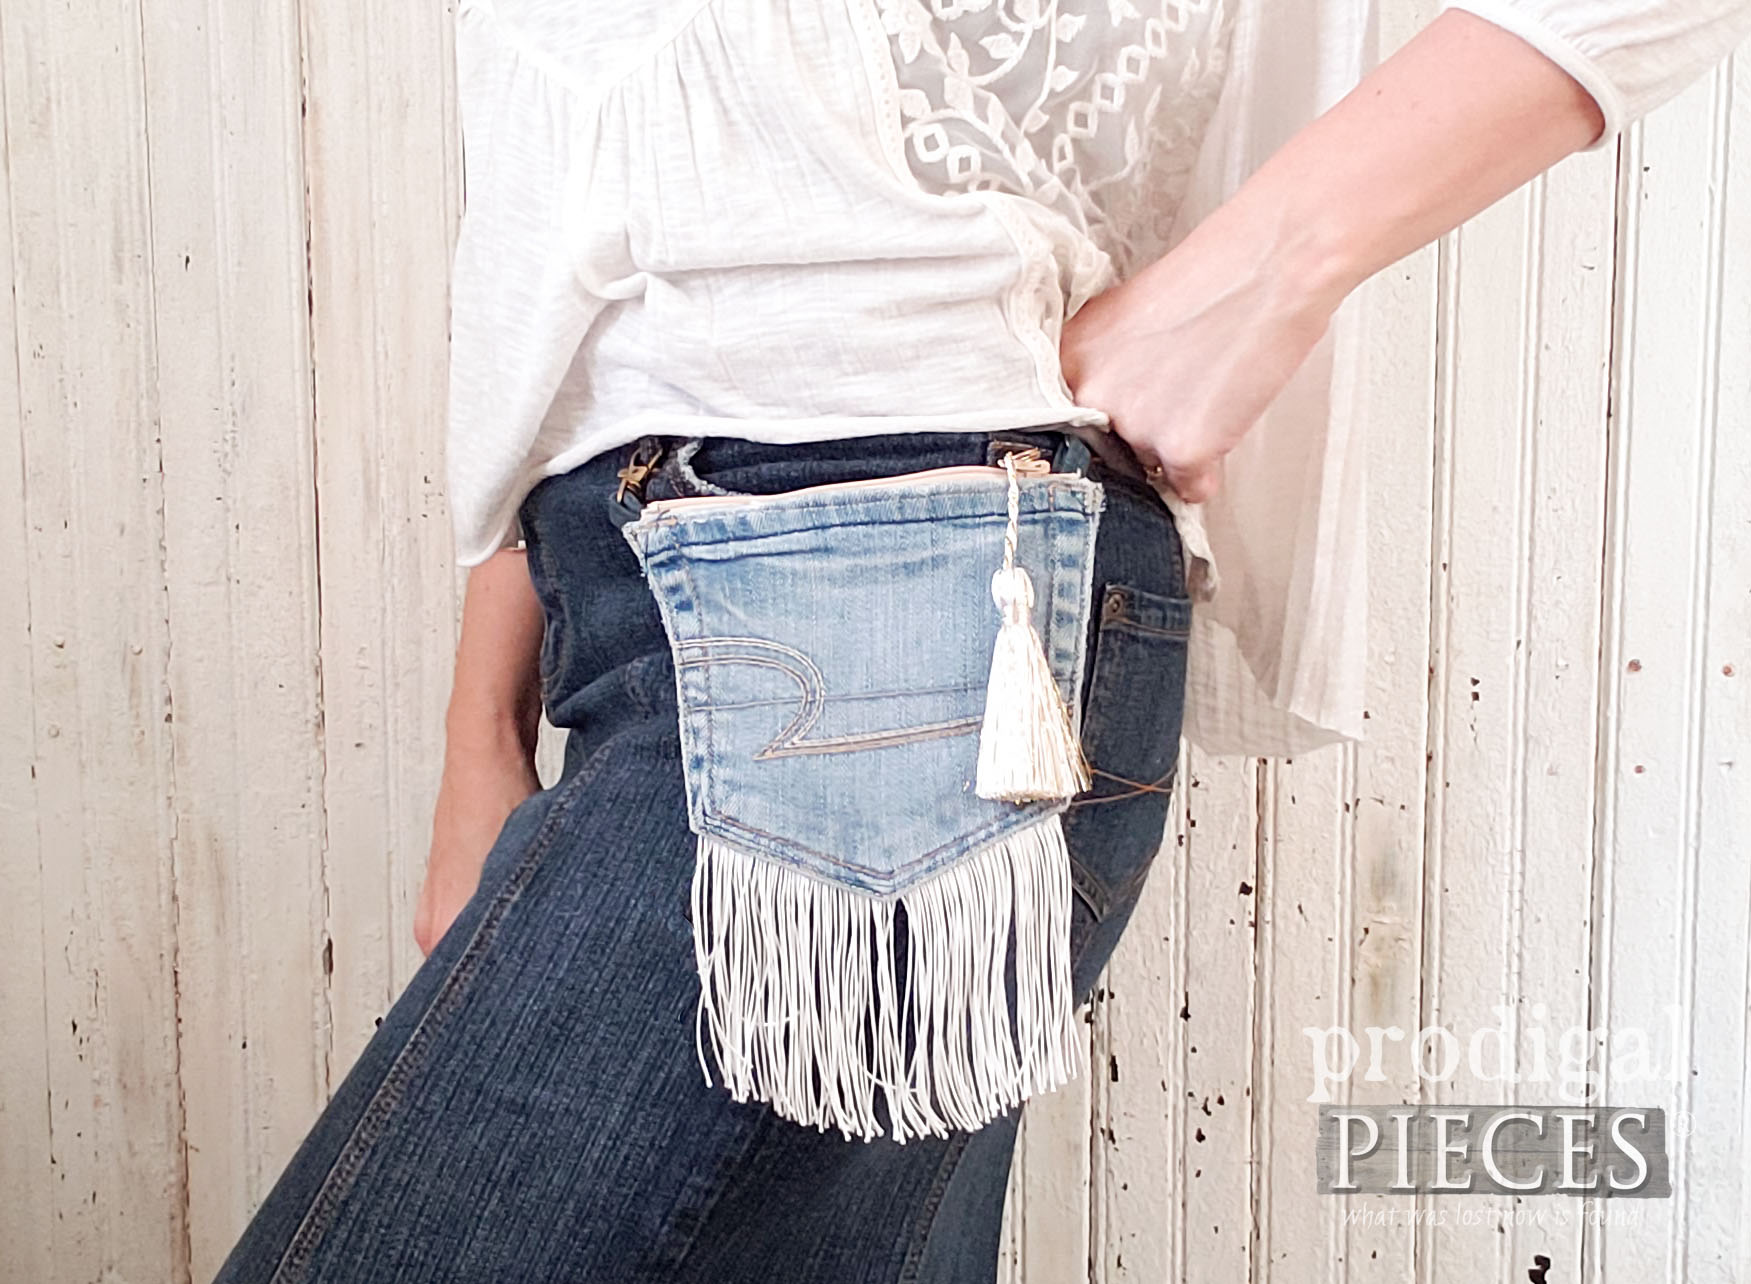 Handmade Beige Belt-Loop Purse Created by Larissa of Prodigal Pieces | prodigalpieces.com #prodigalpieces #handmade #fashion #style #diy #purse #bag #women